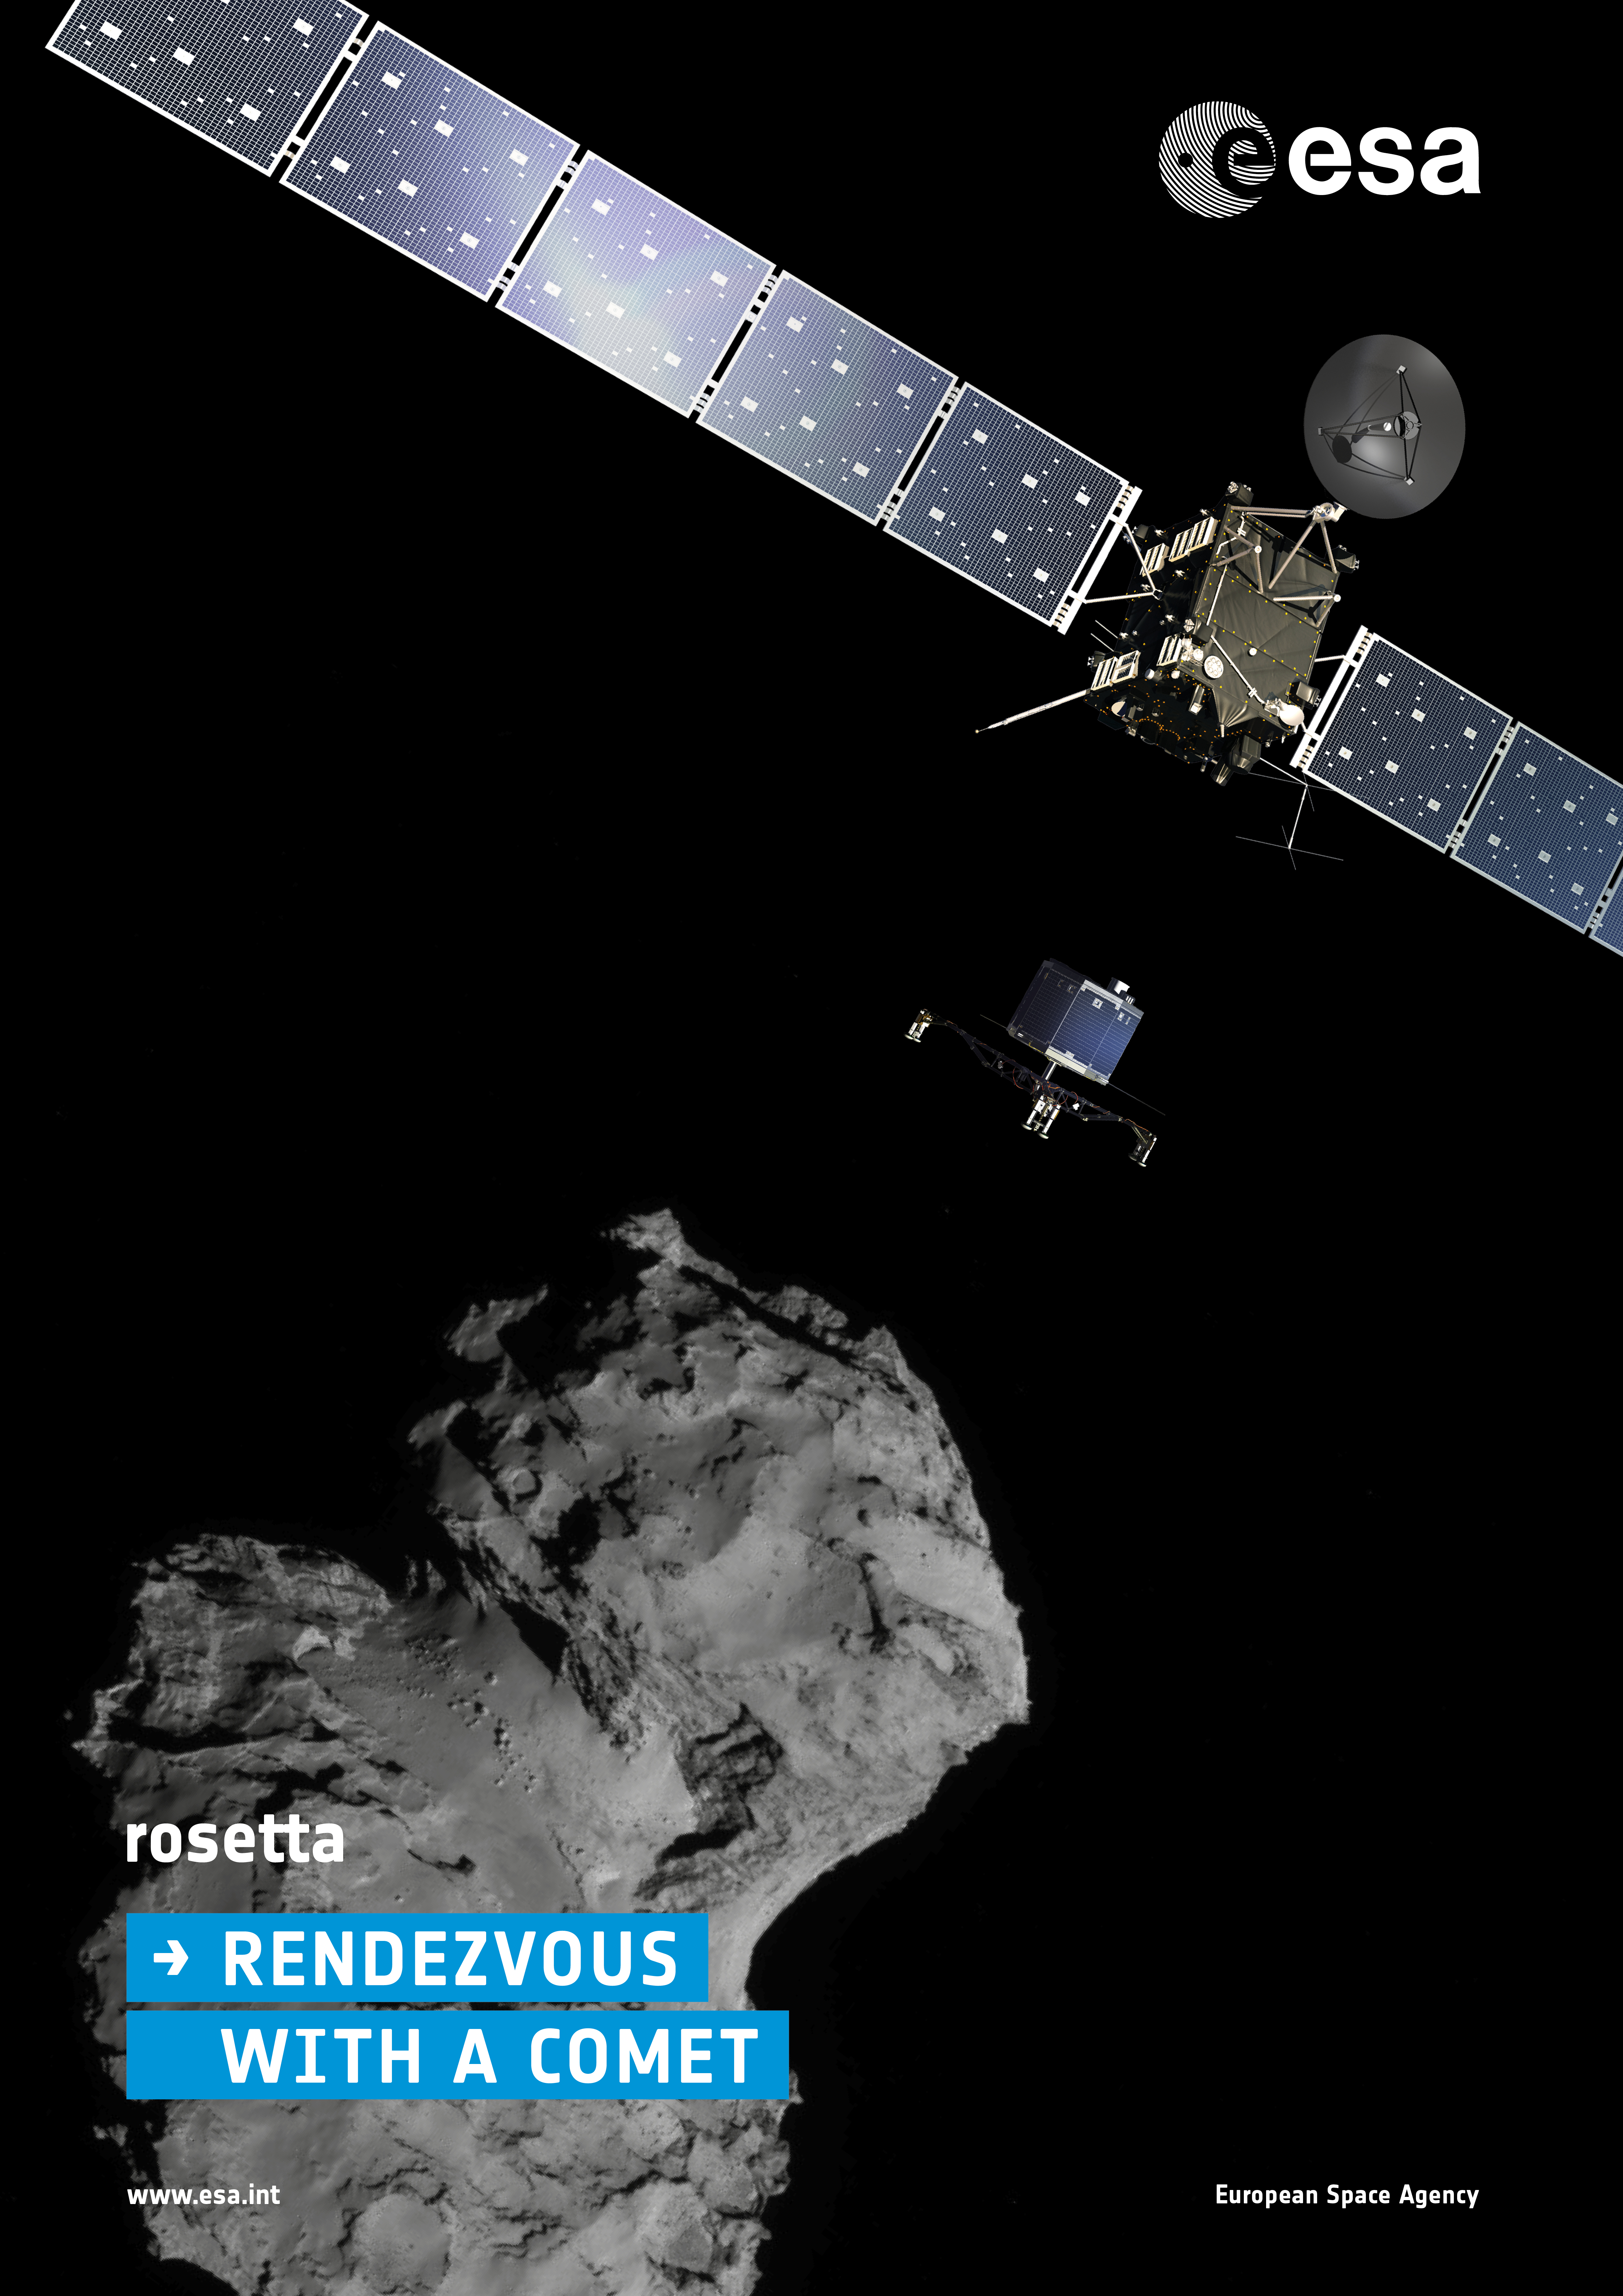 rosetta spacecraft esa logo - photo #8